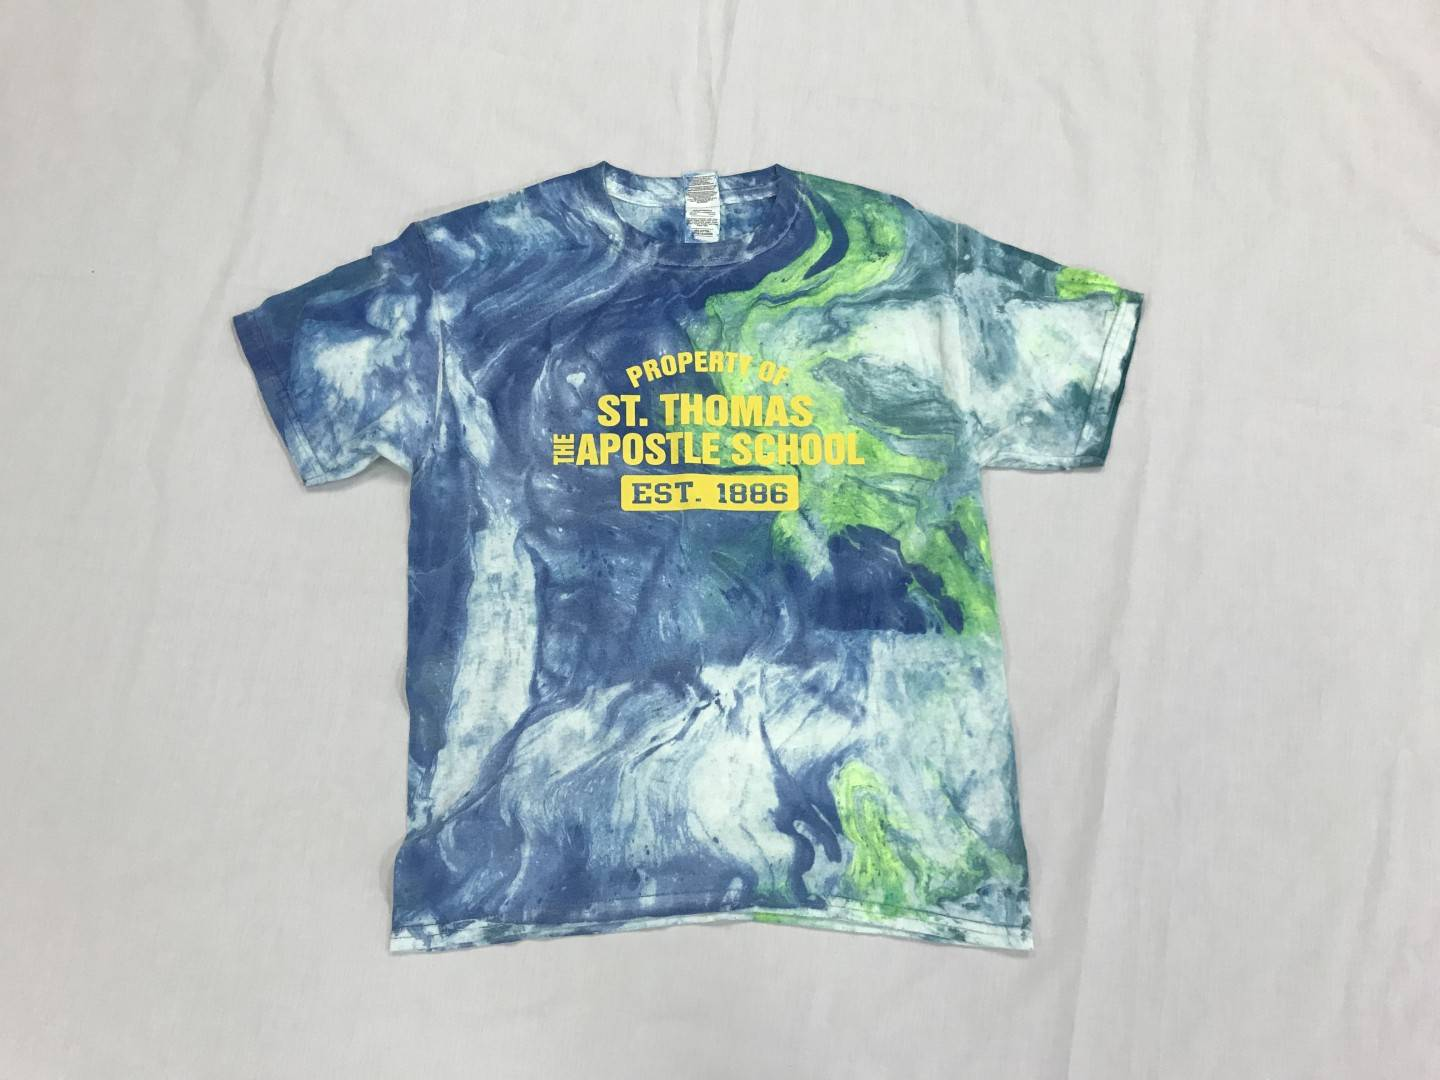 Tie dyed multi color t-shirt with Property of St. Thomas the Apostle logo